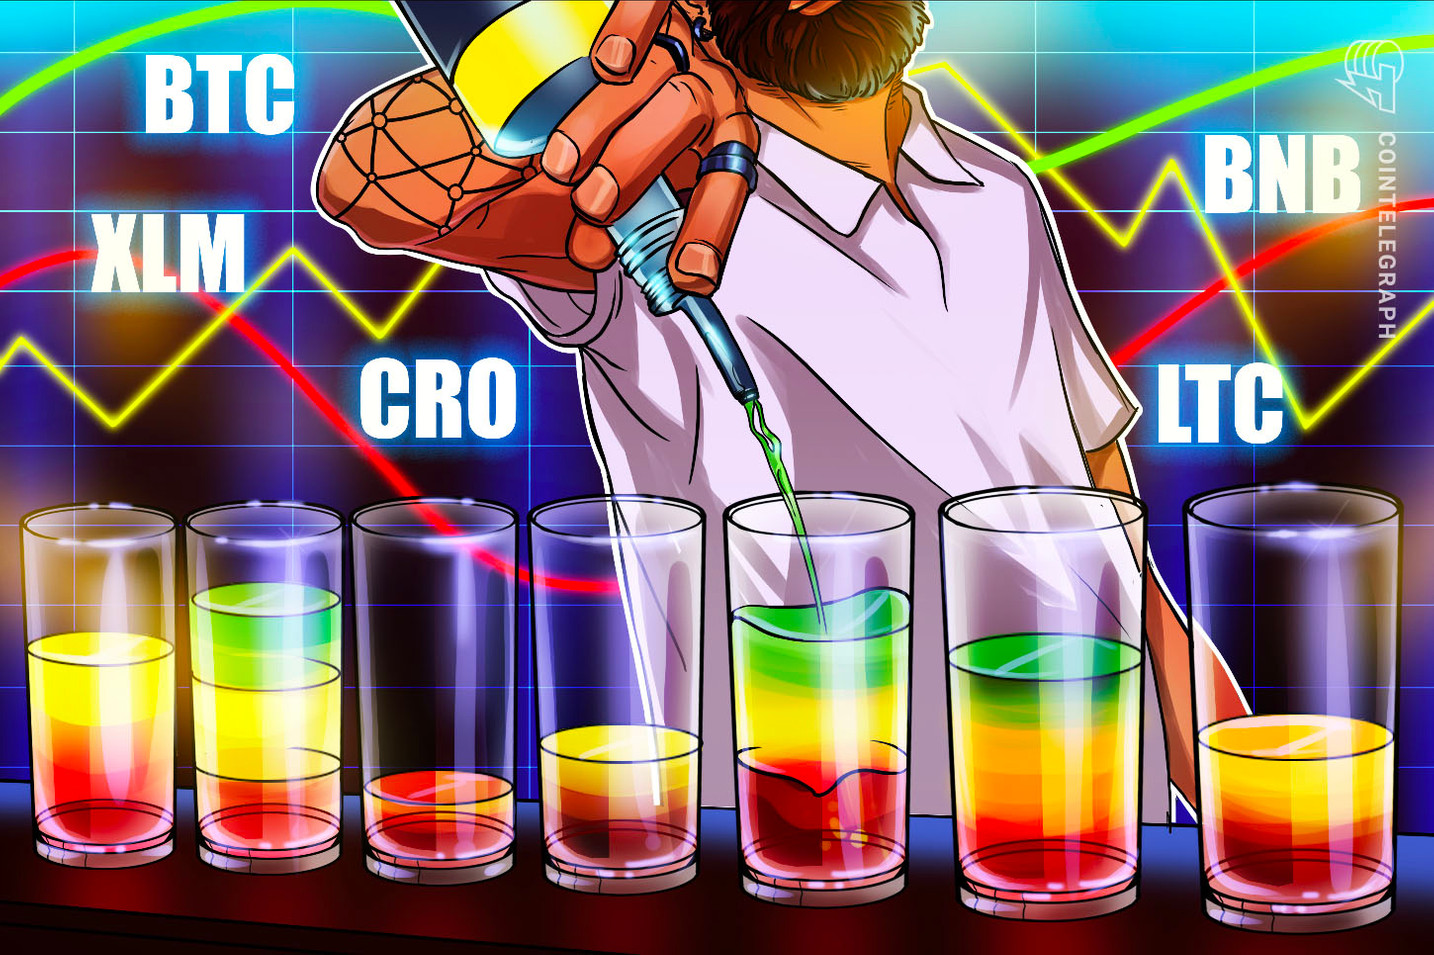 Top 5 cryptocurrencies to watch this week: BTC, XLM, CRO, BNB, LTC